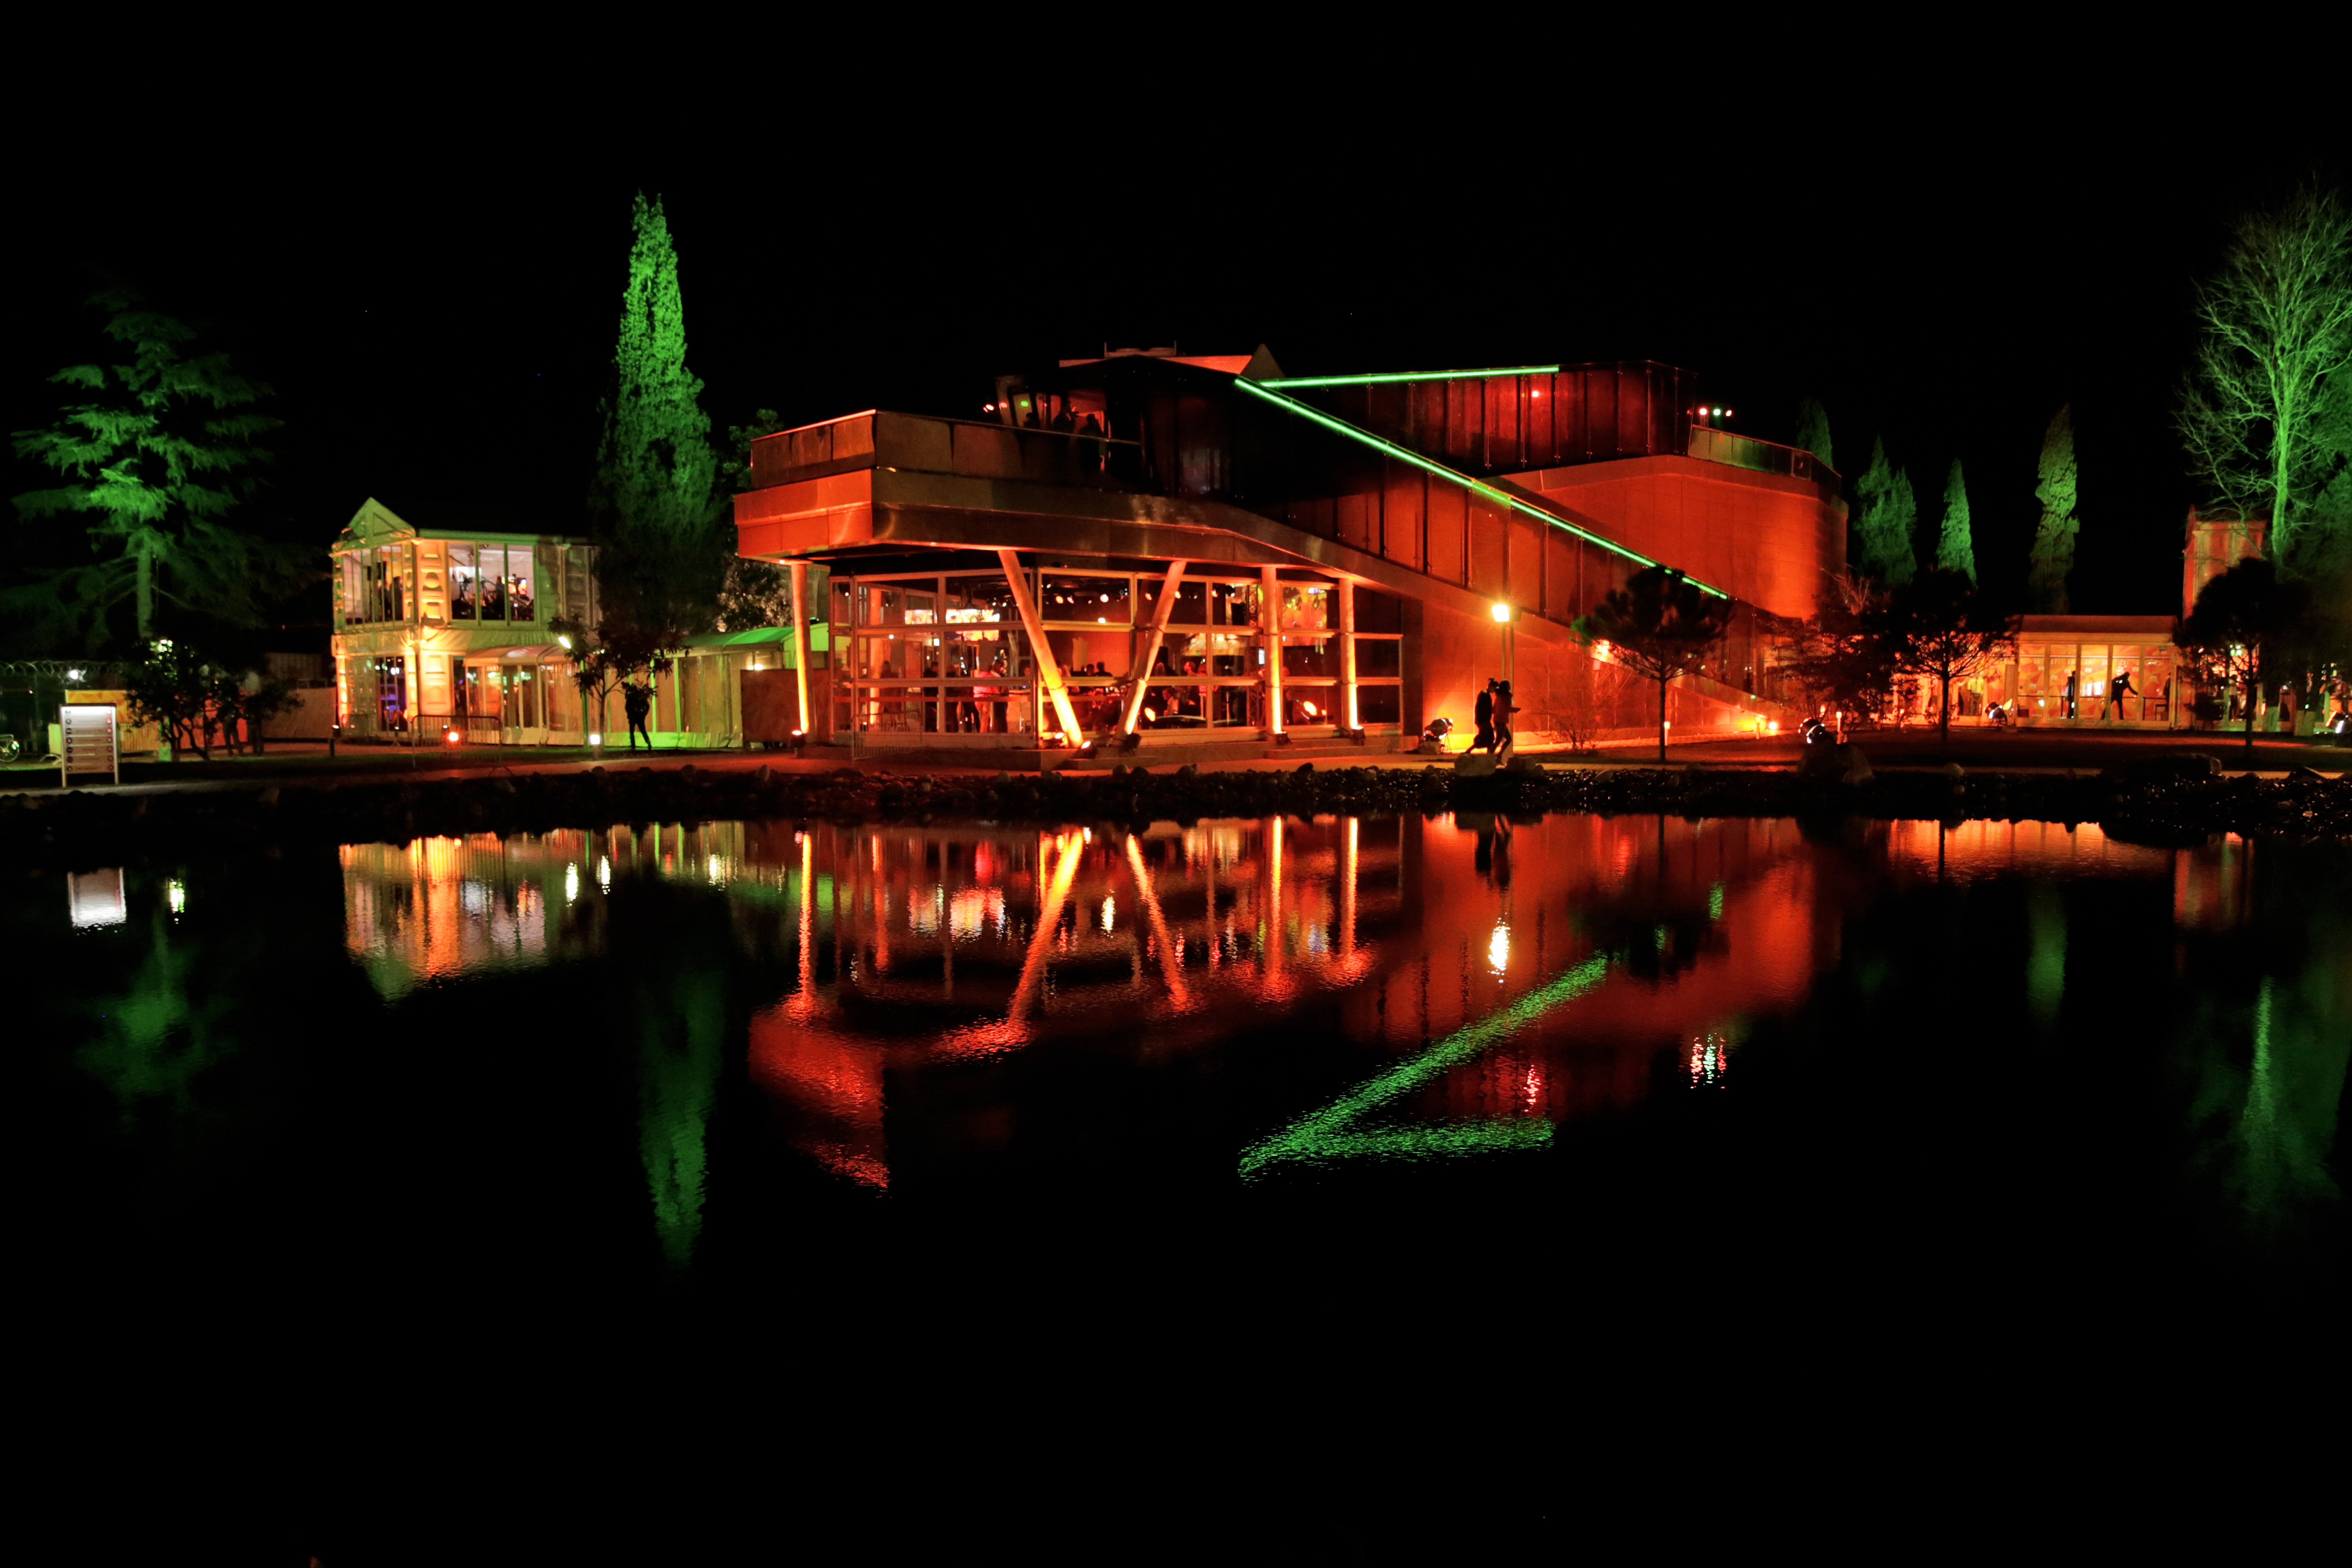 The orange-lit Holland House is reflected in a pond following the appearance of gold medallist Sven Kramer of the Netherlands on stage in front of fans after he set a new Olympic record to  win the 5000 meters speedskating race at the 2014 Winter Olympics in Sochi, Russia, Saturday, Feb. 8, 2014. (AP Photo/Matt Dunham)